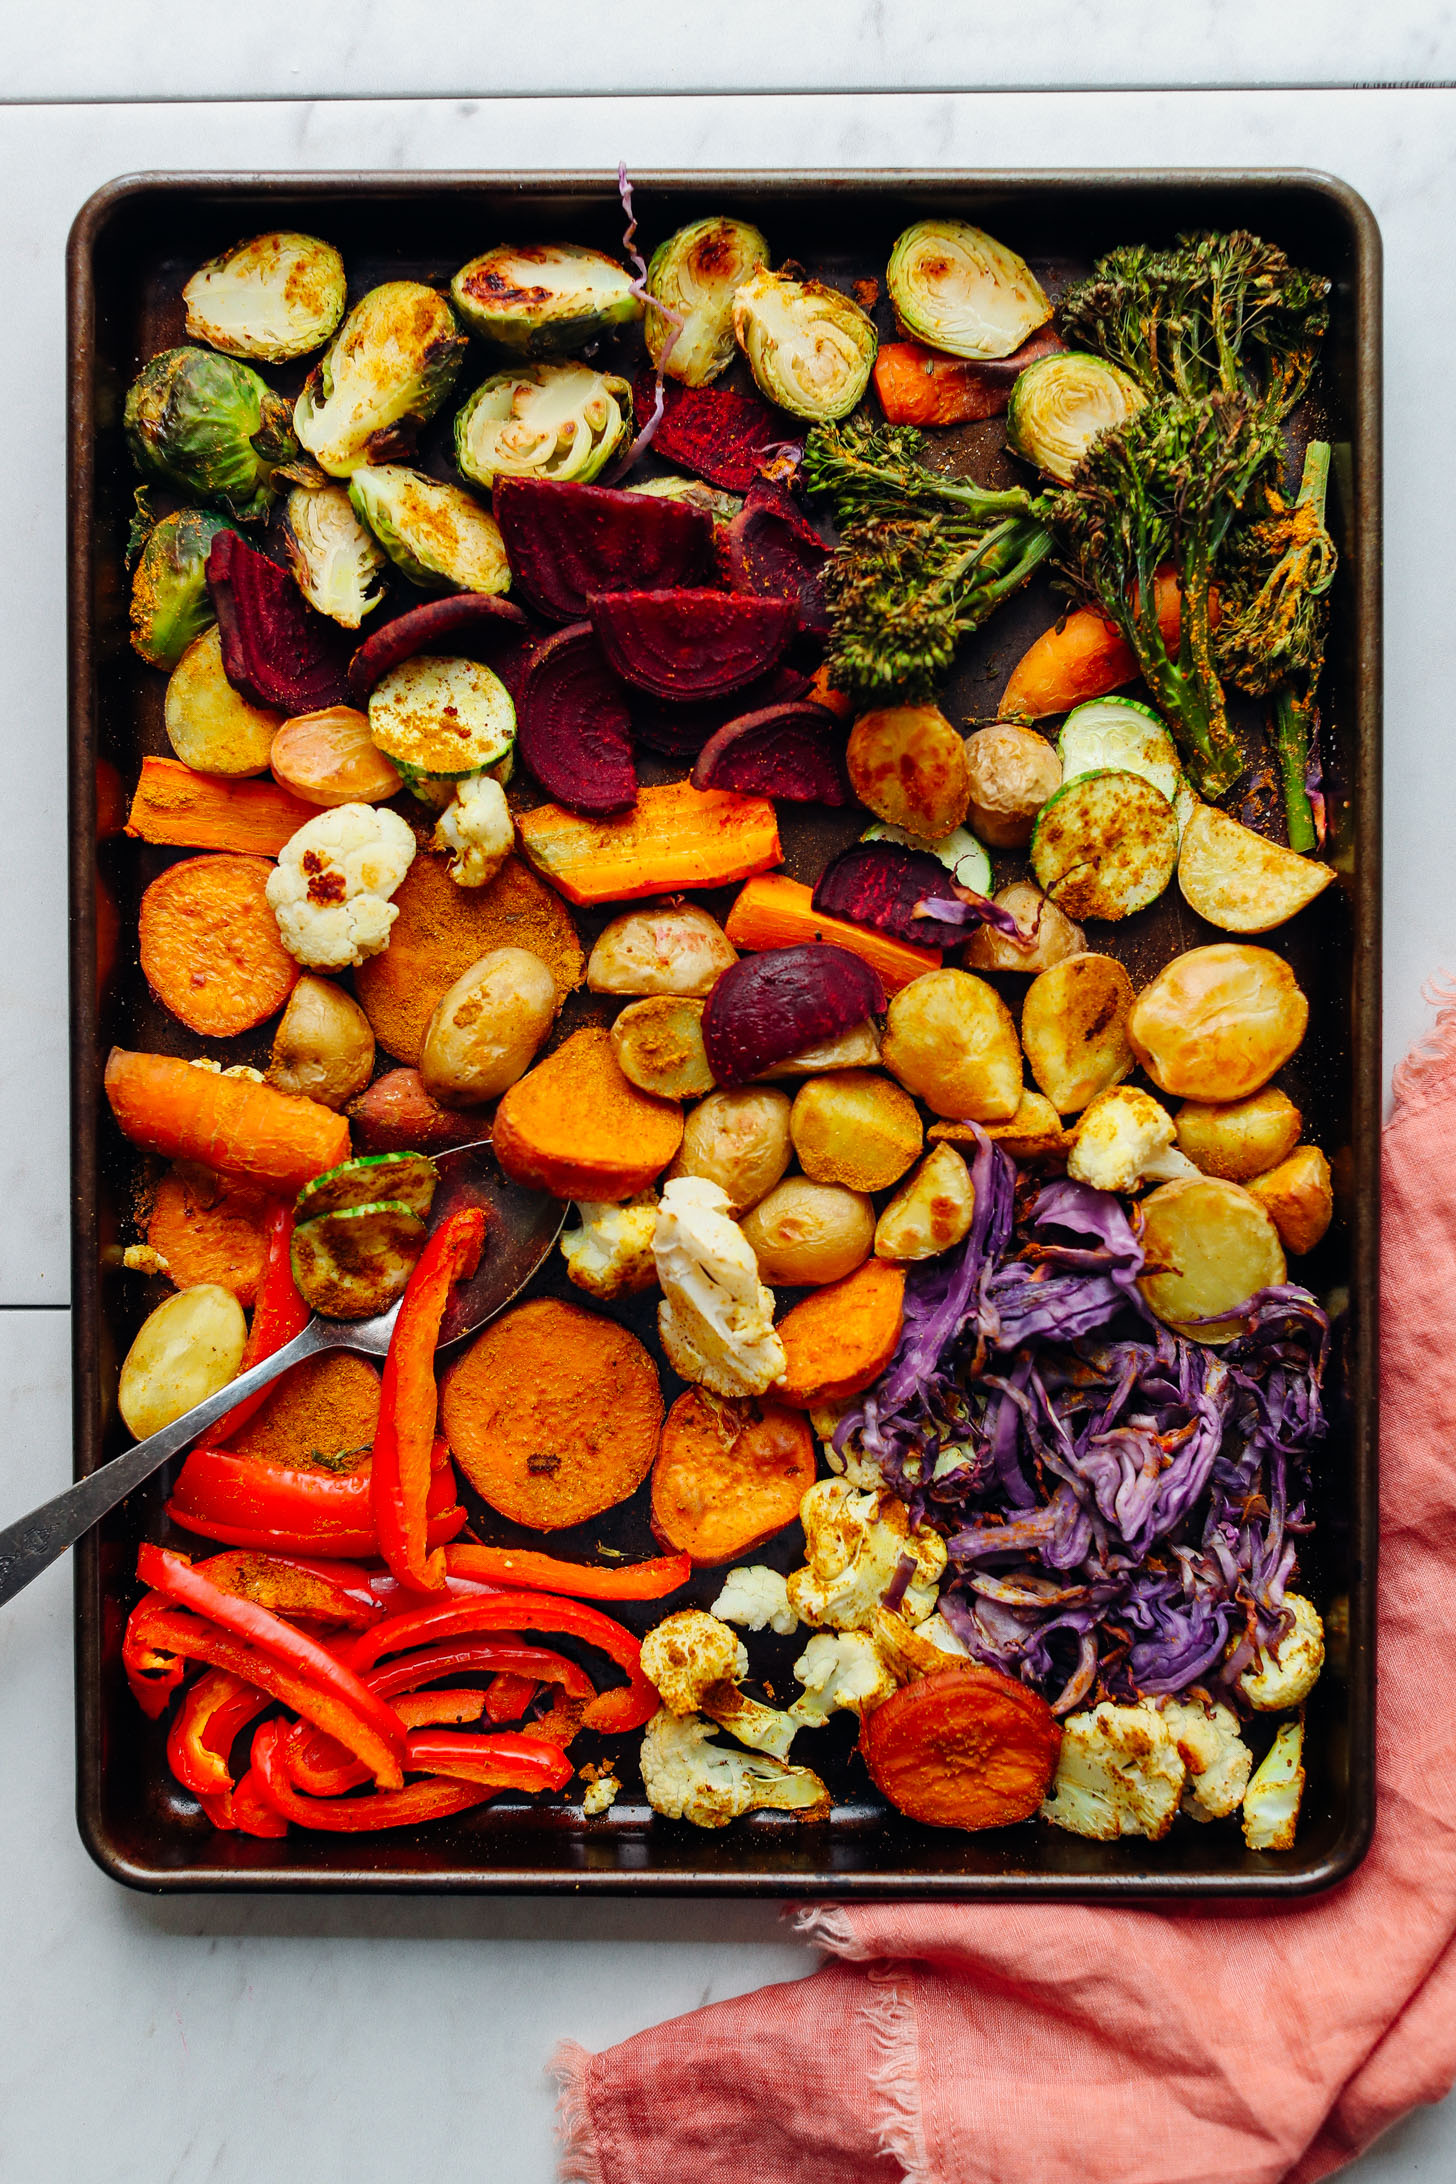 Baking tray filled with a bounty of freshly roasted vegetables